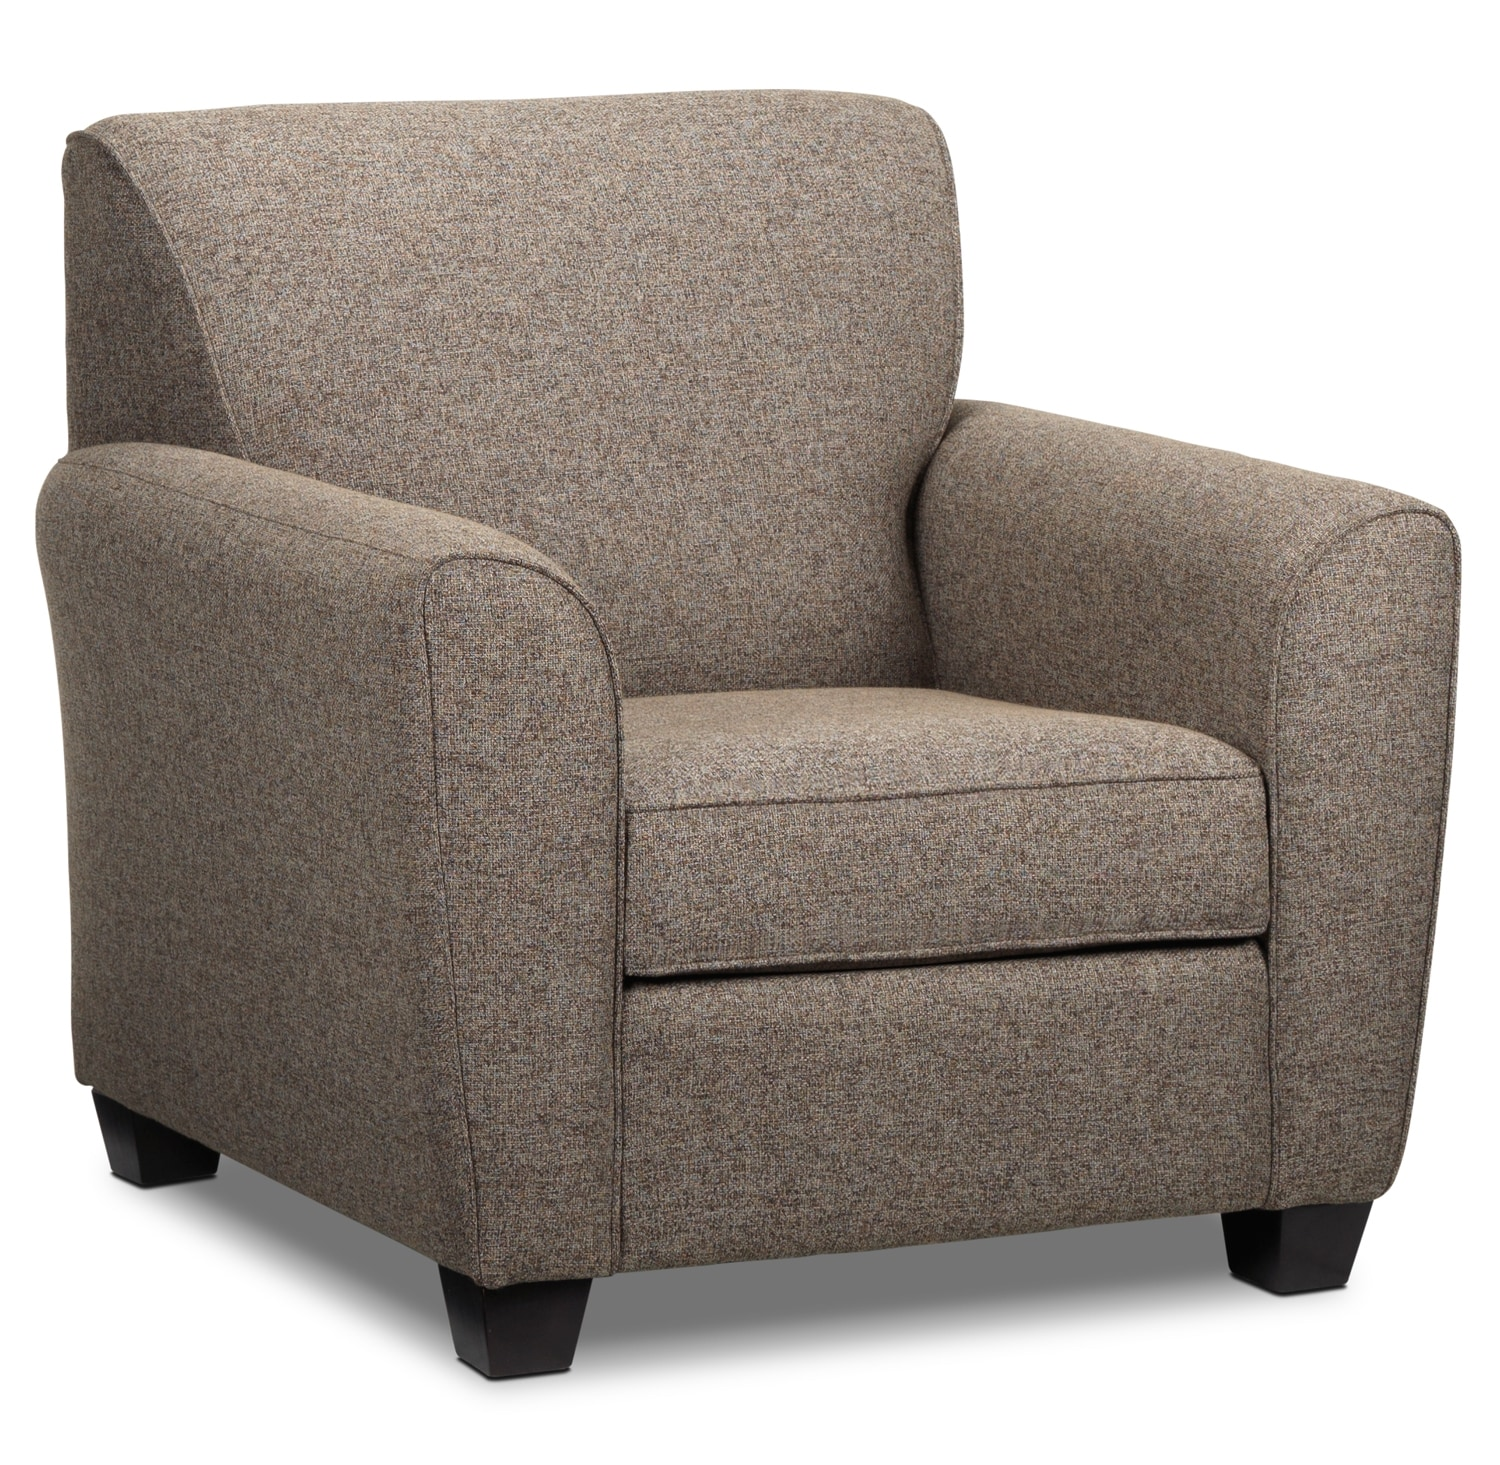 Living Room Furniture - Ashby Chair - Brown